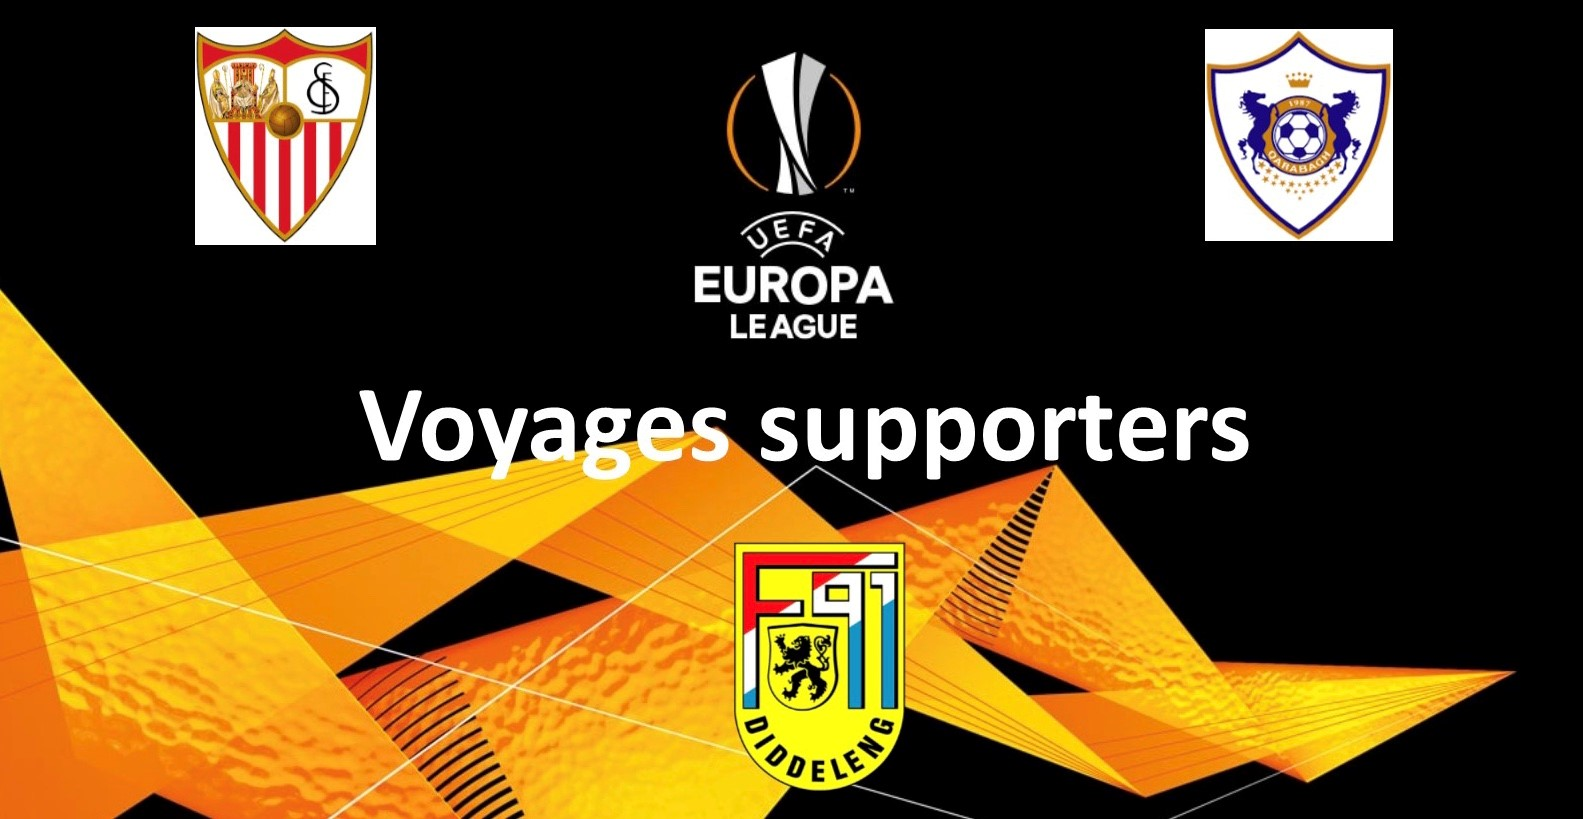 UEFA Europa League - VOYAGES SUPPORTERS